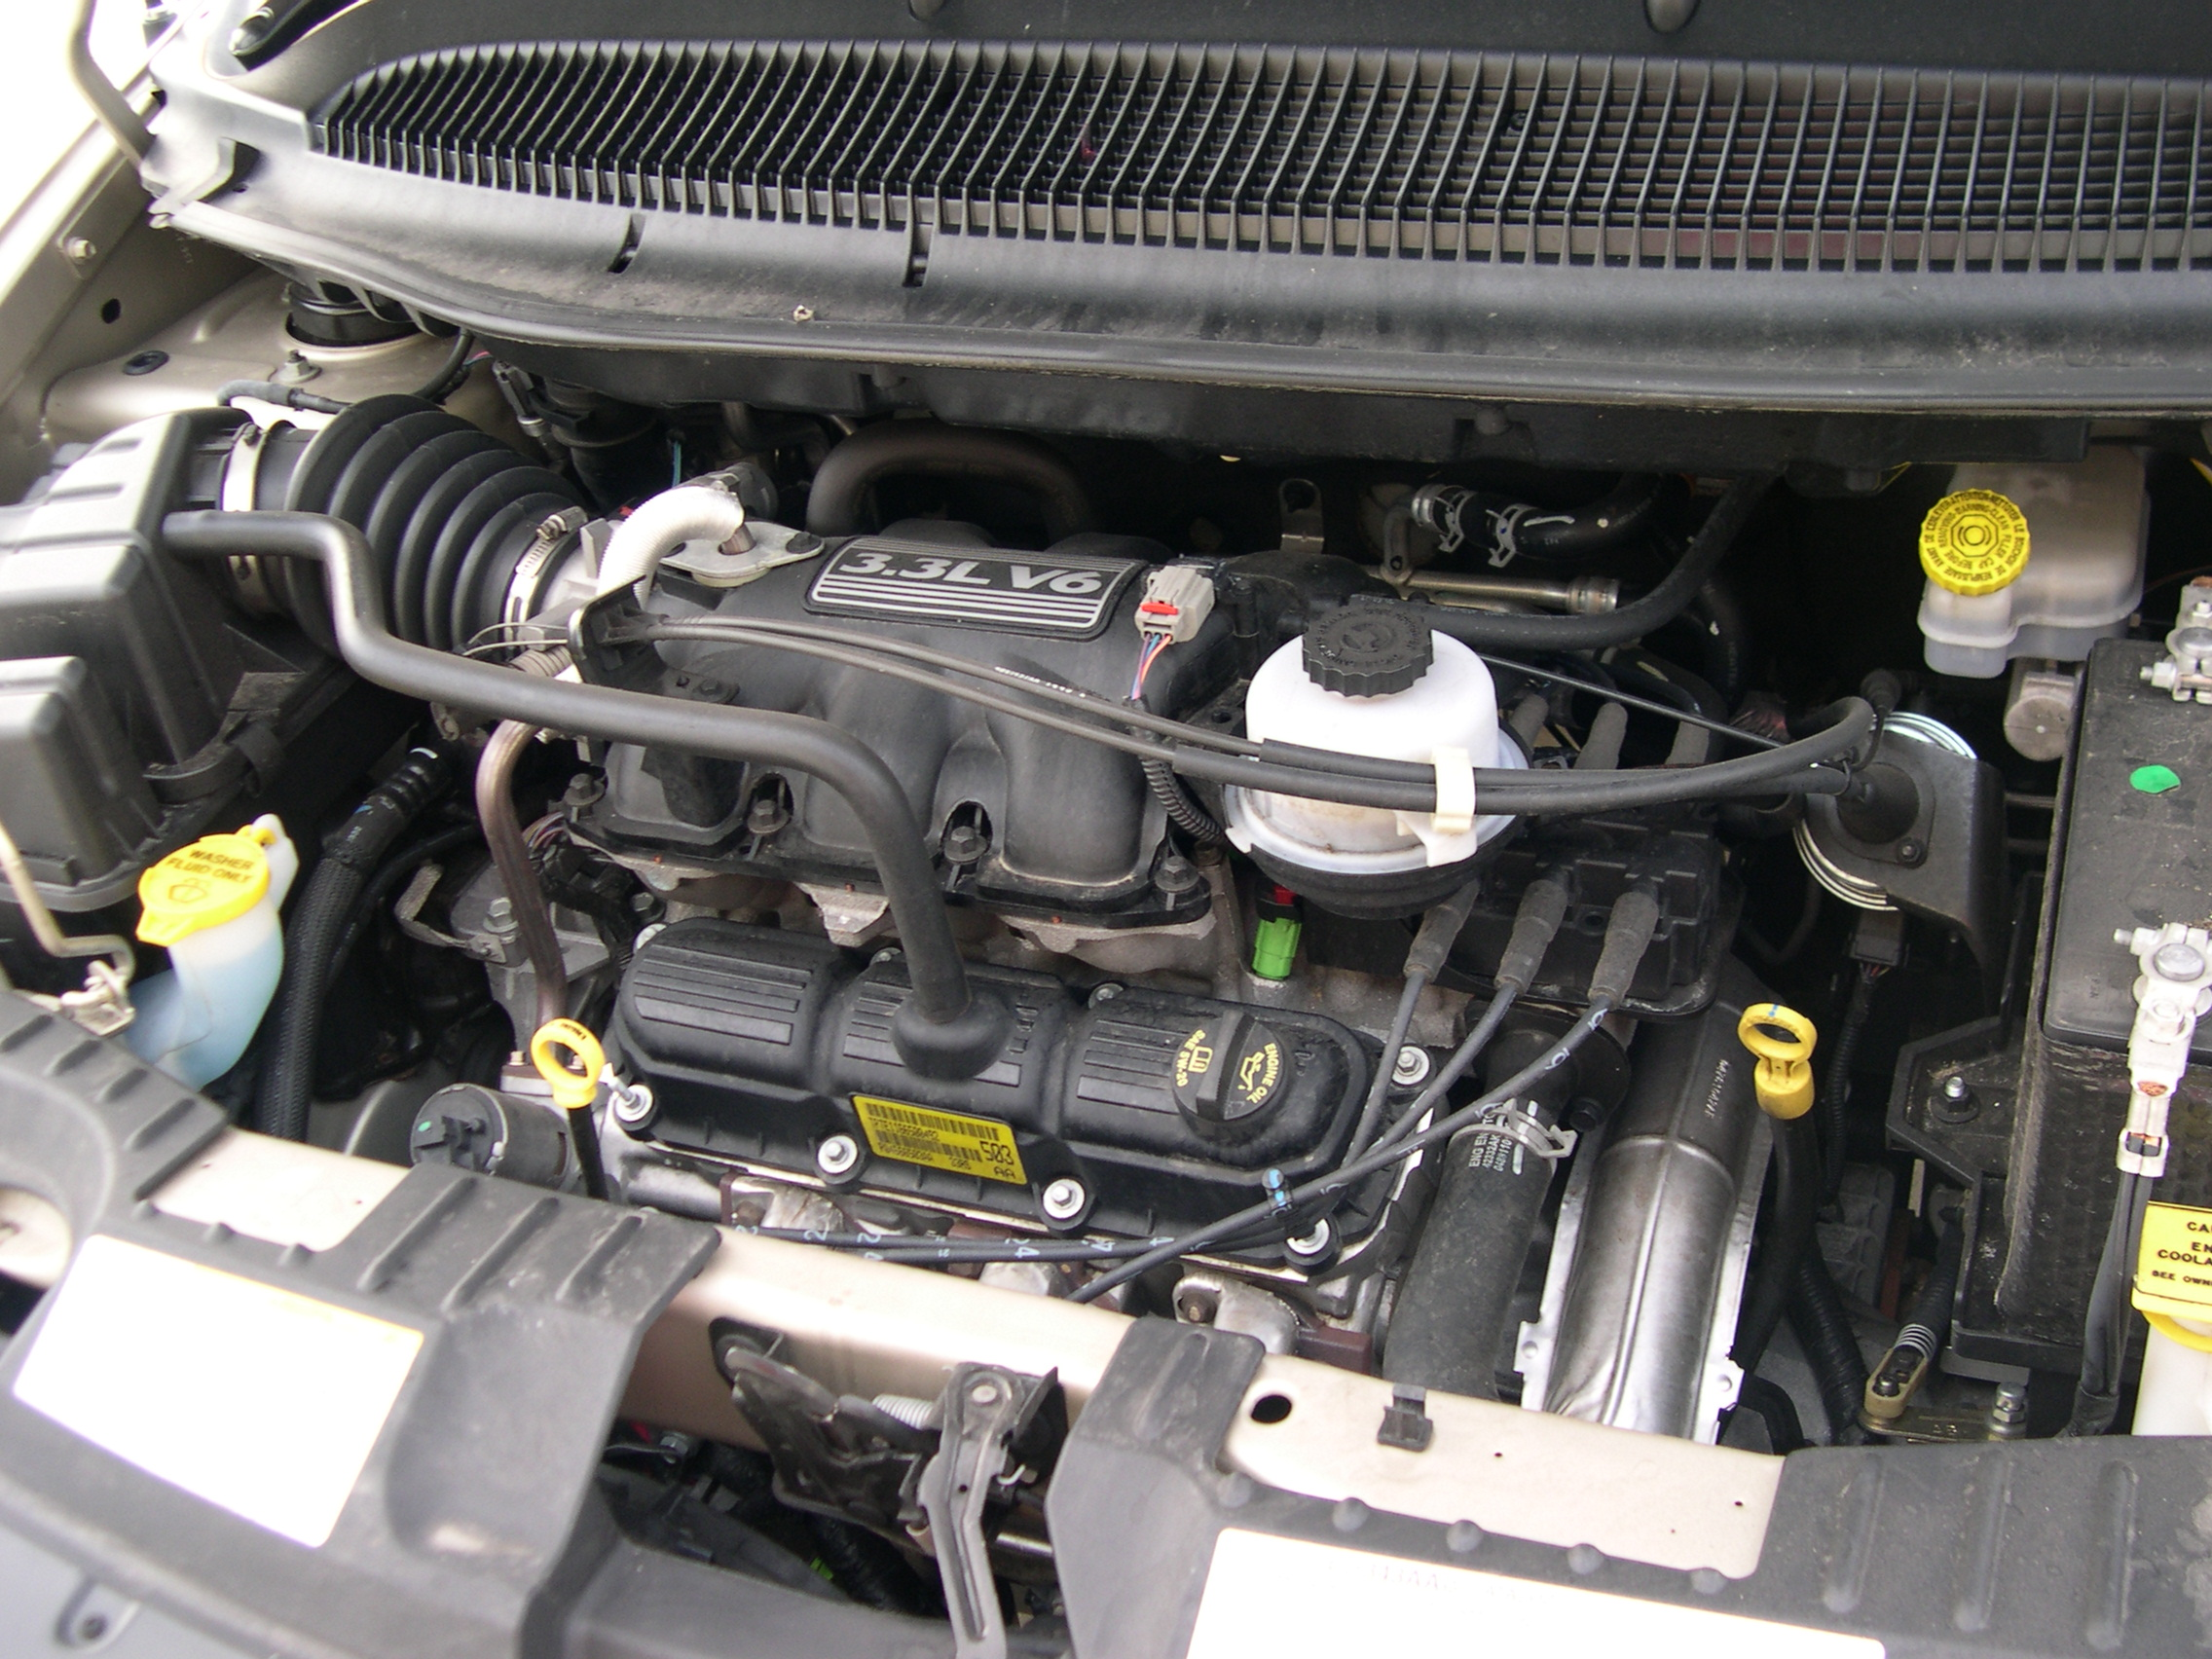 Chrysler 33 38 Engine Wikipedia 98 Civic Diagram